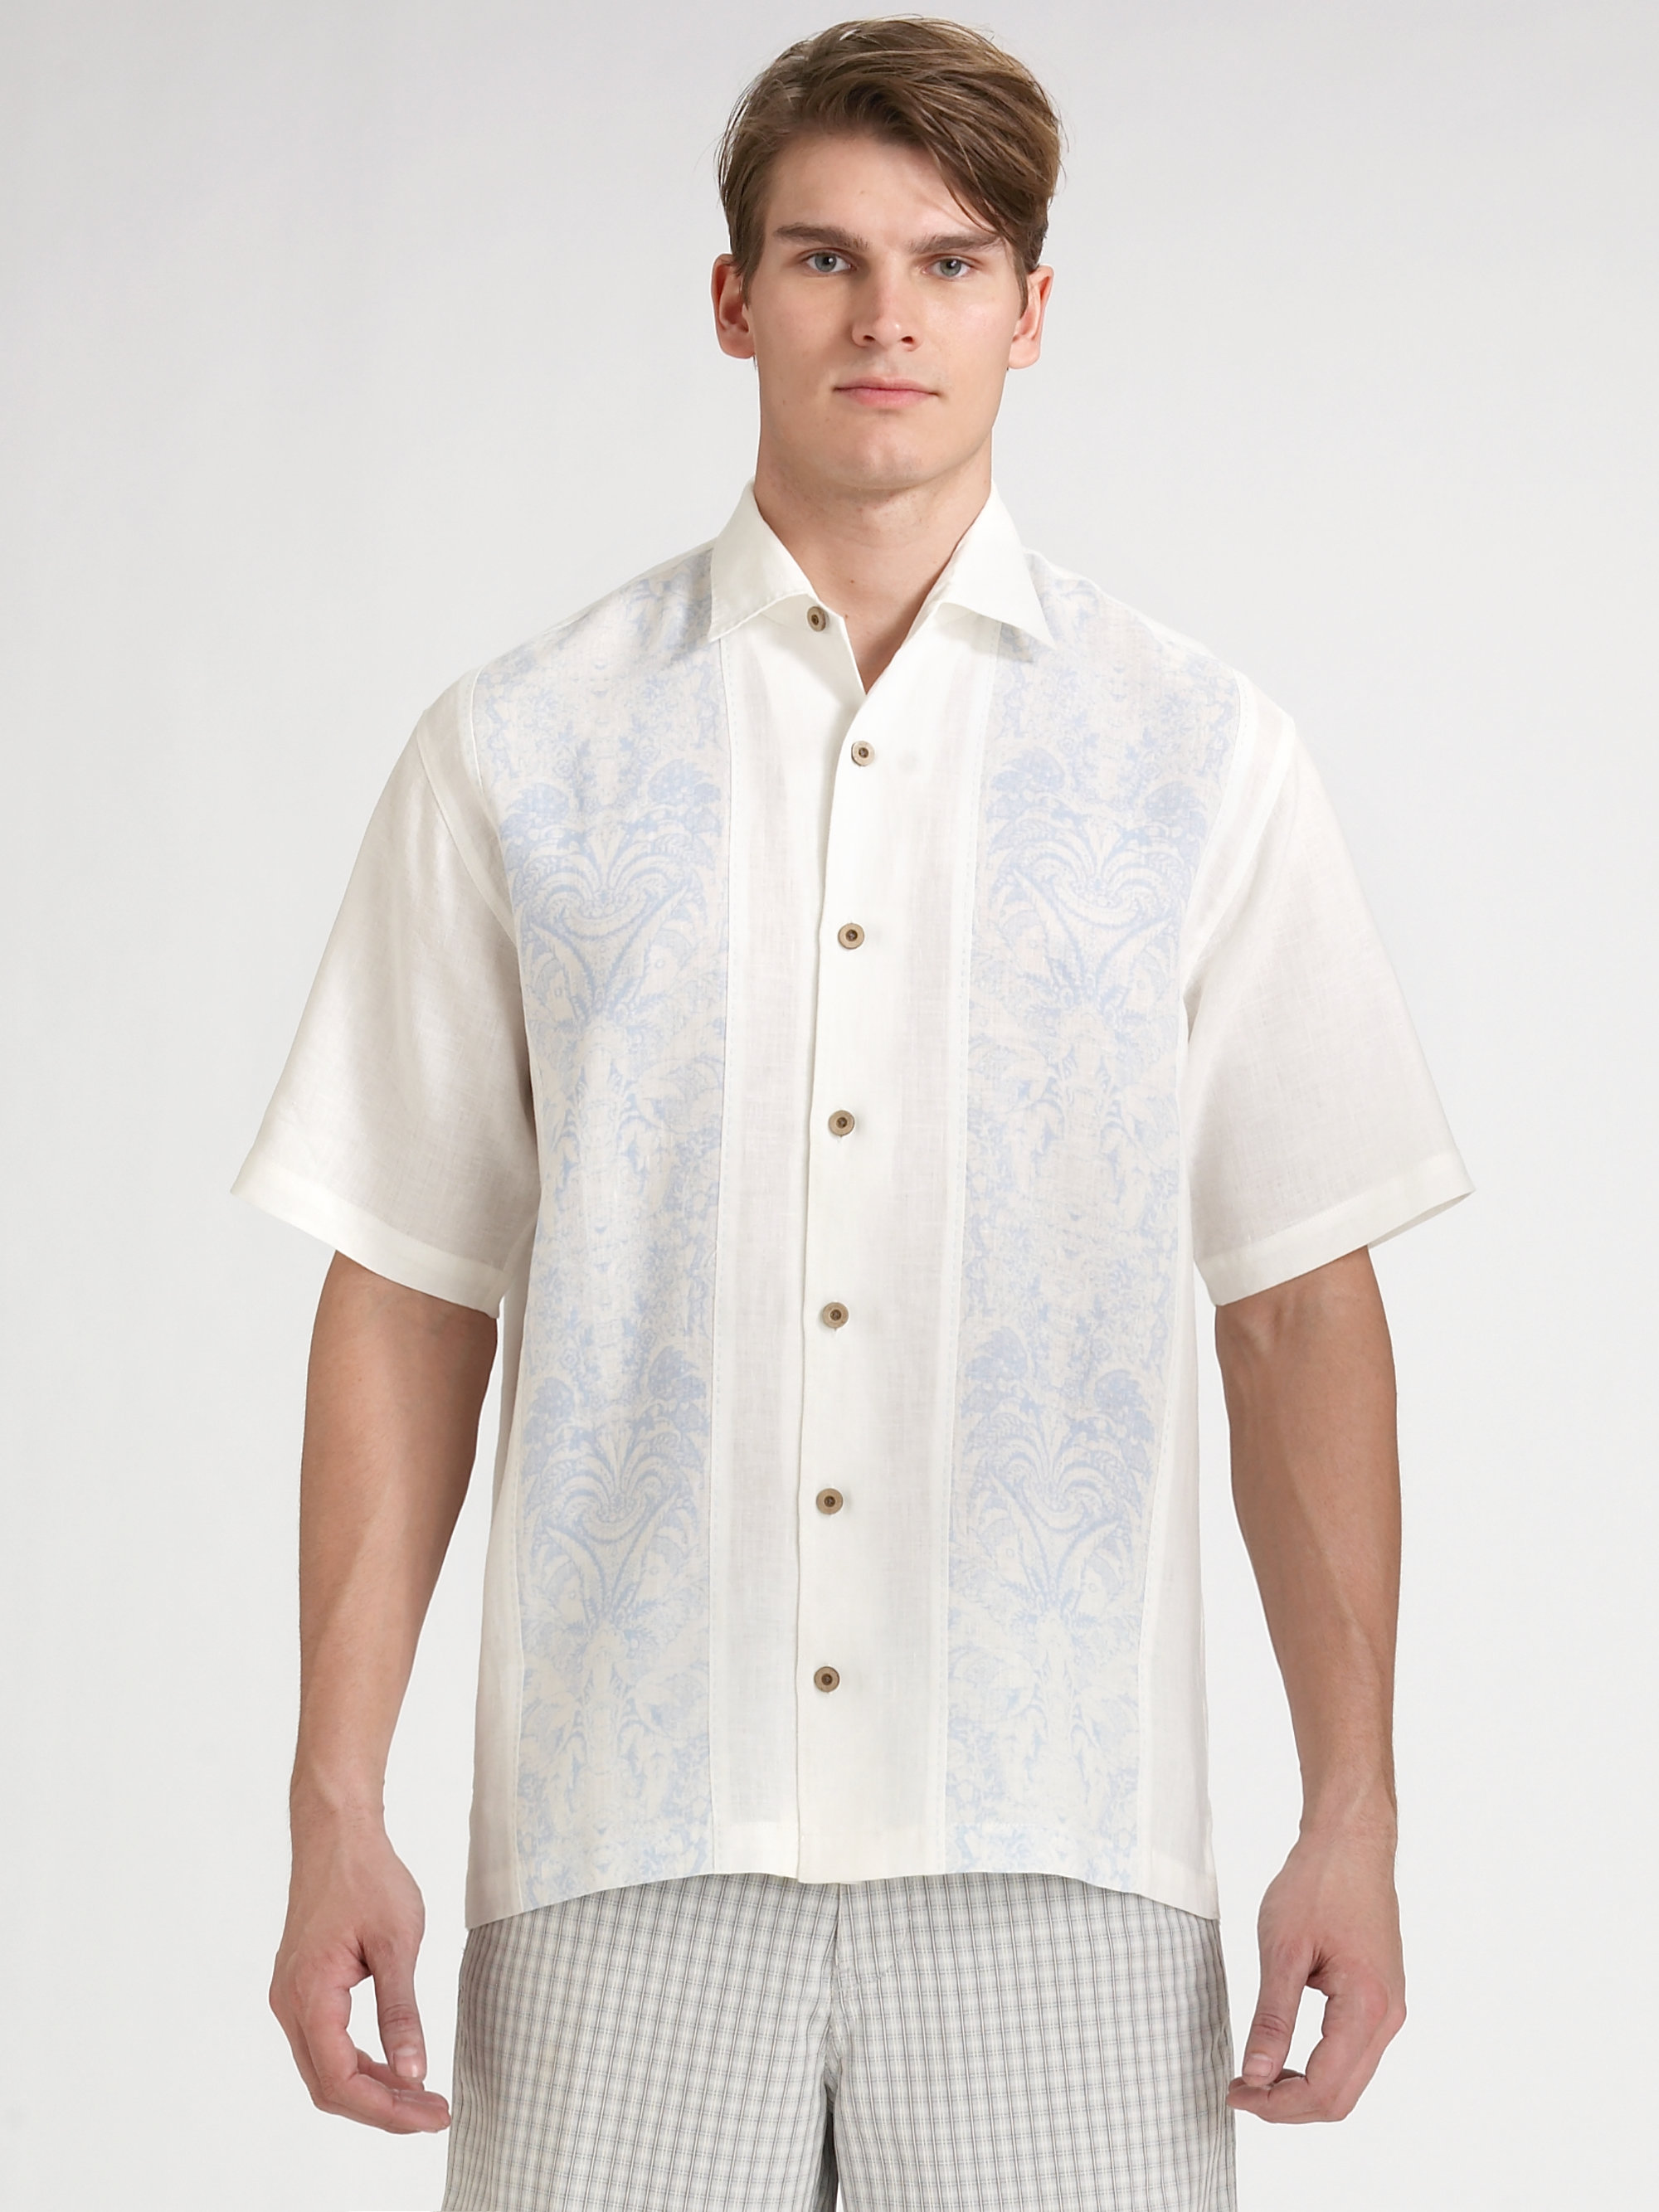 Tommy Bahama Martinique Line Shirt in White for Men cabo